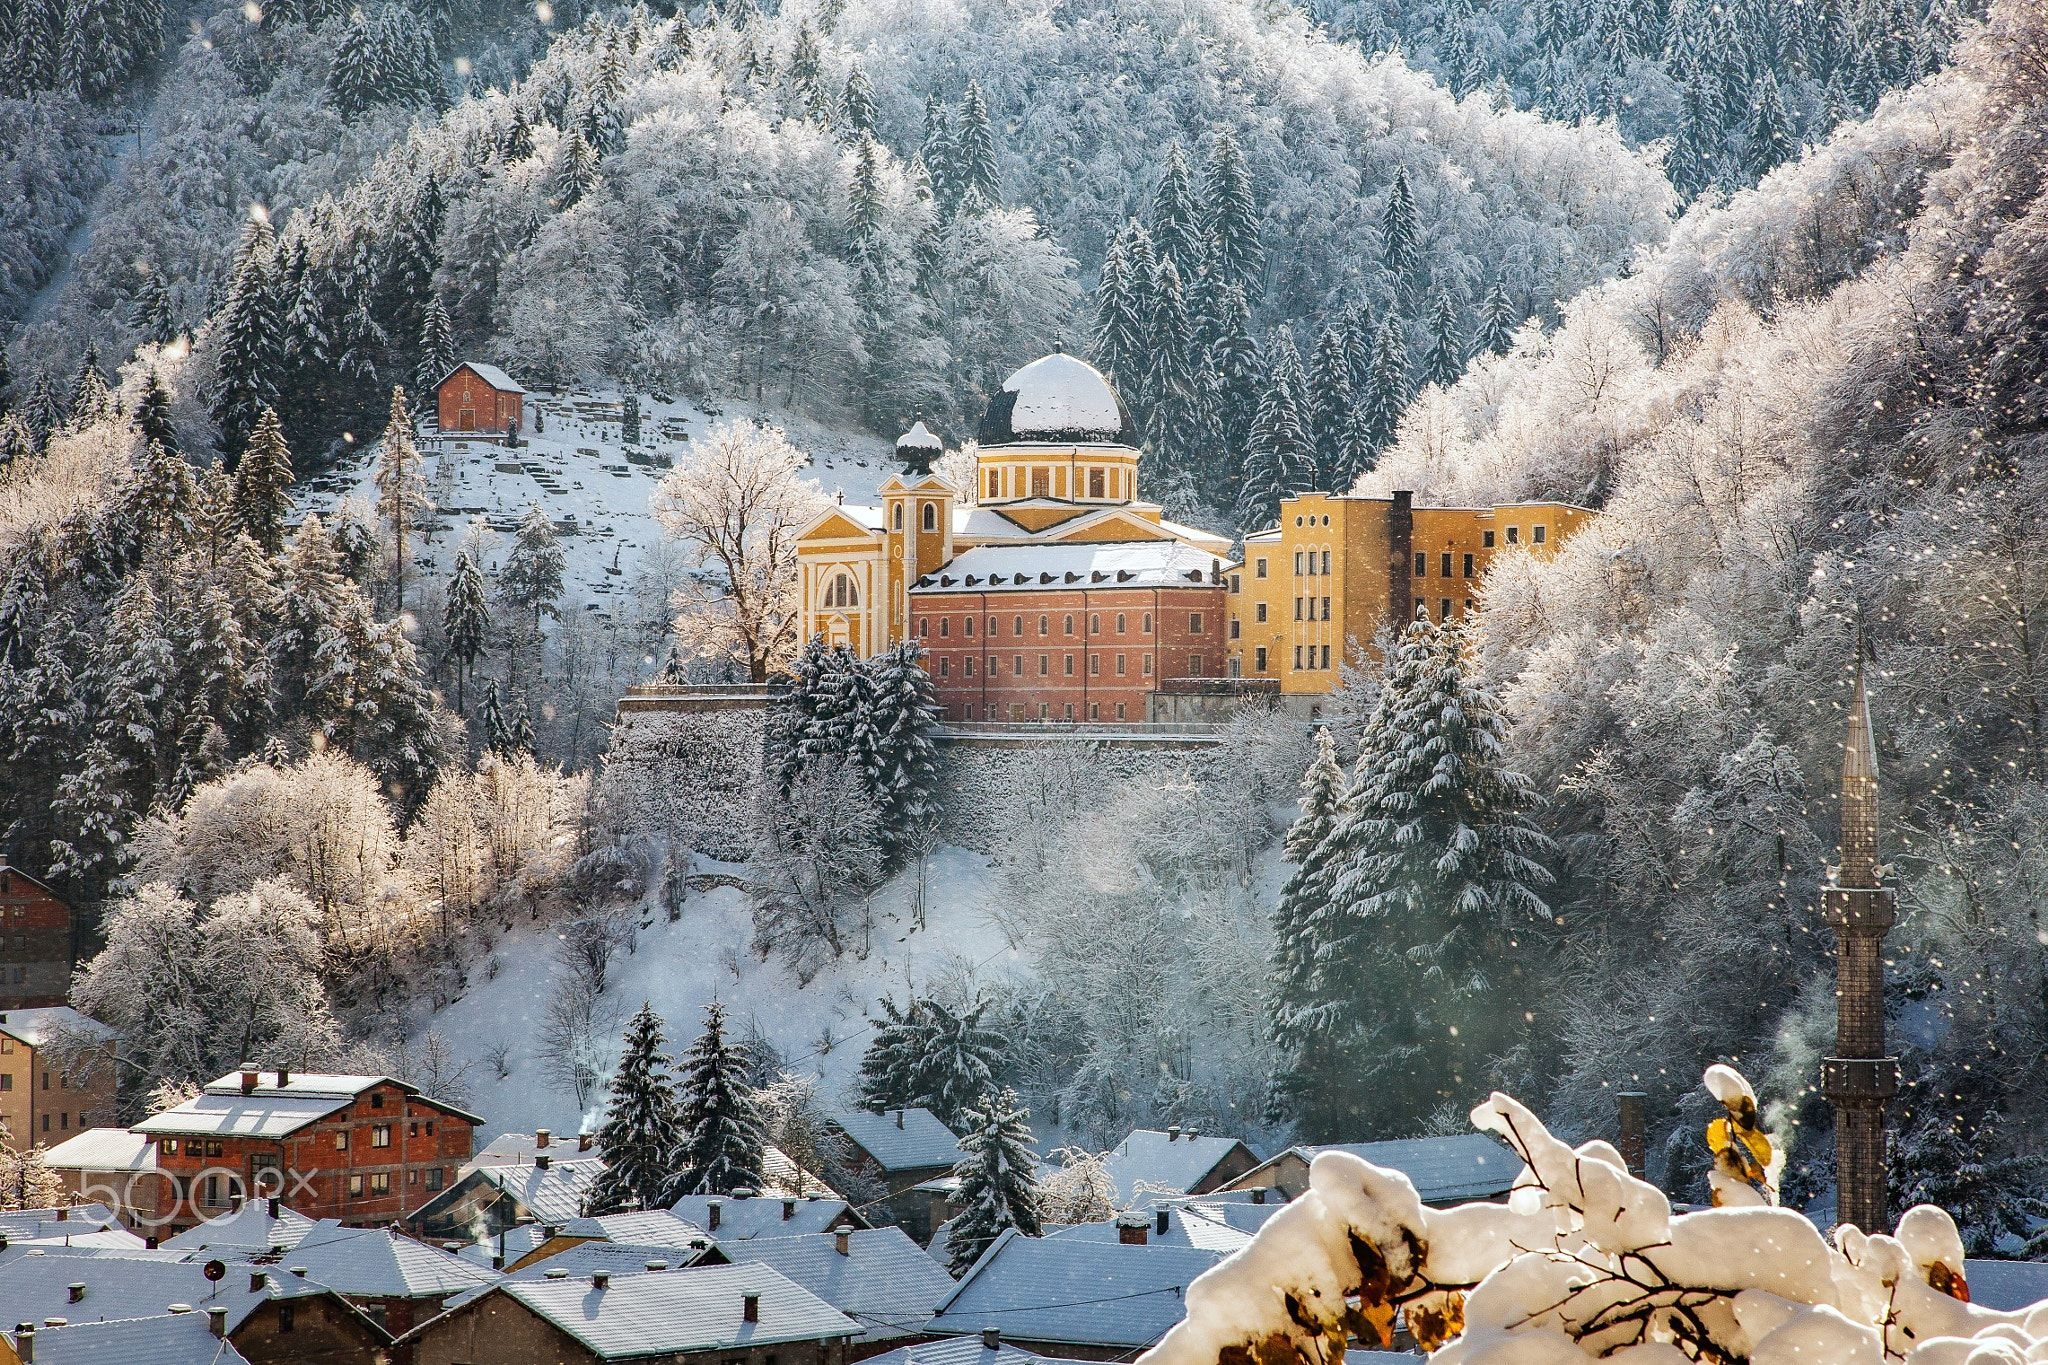 Color art fojnica - Towards Christmas Franciscan Monastery Of The Holy Spirit Is A Bosnian Franciscan Monastery In Fojnica